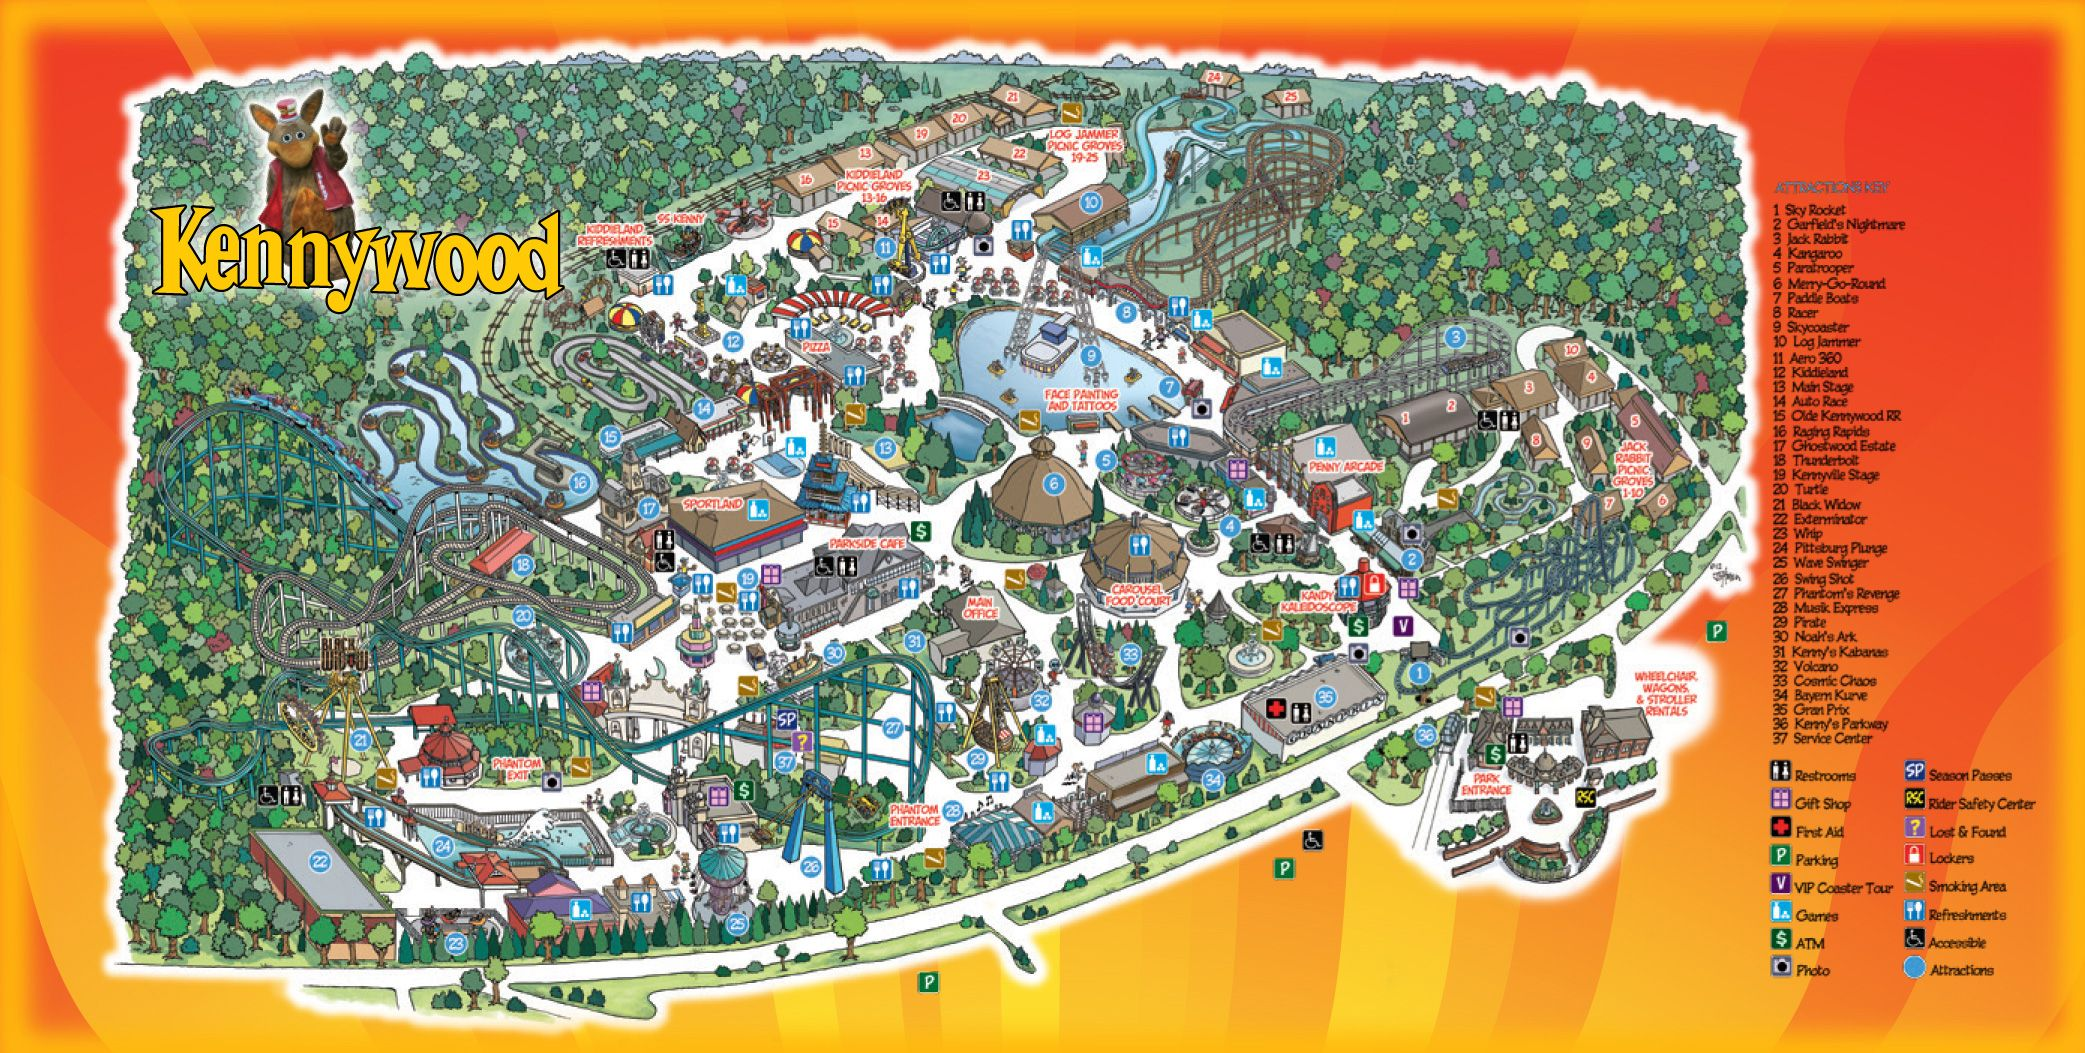 Park Map | Kennywood | Checked off the bucket list....well sorta ...